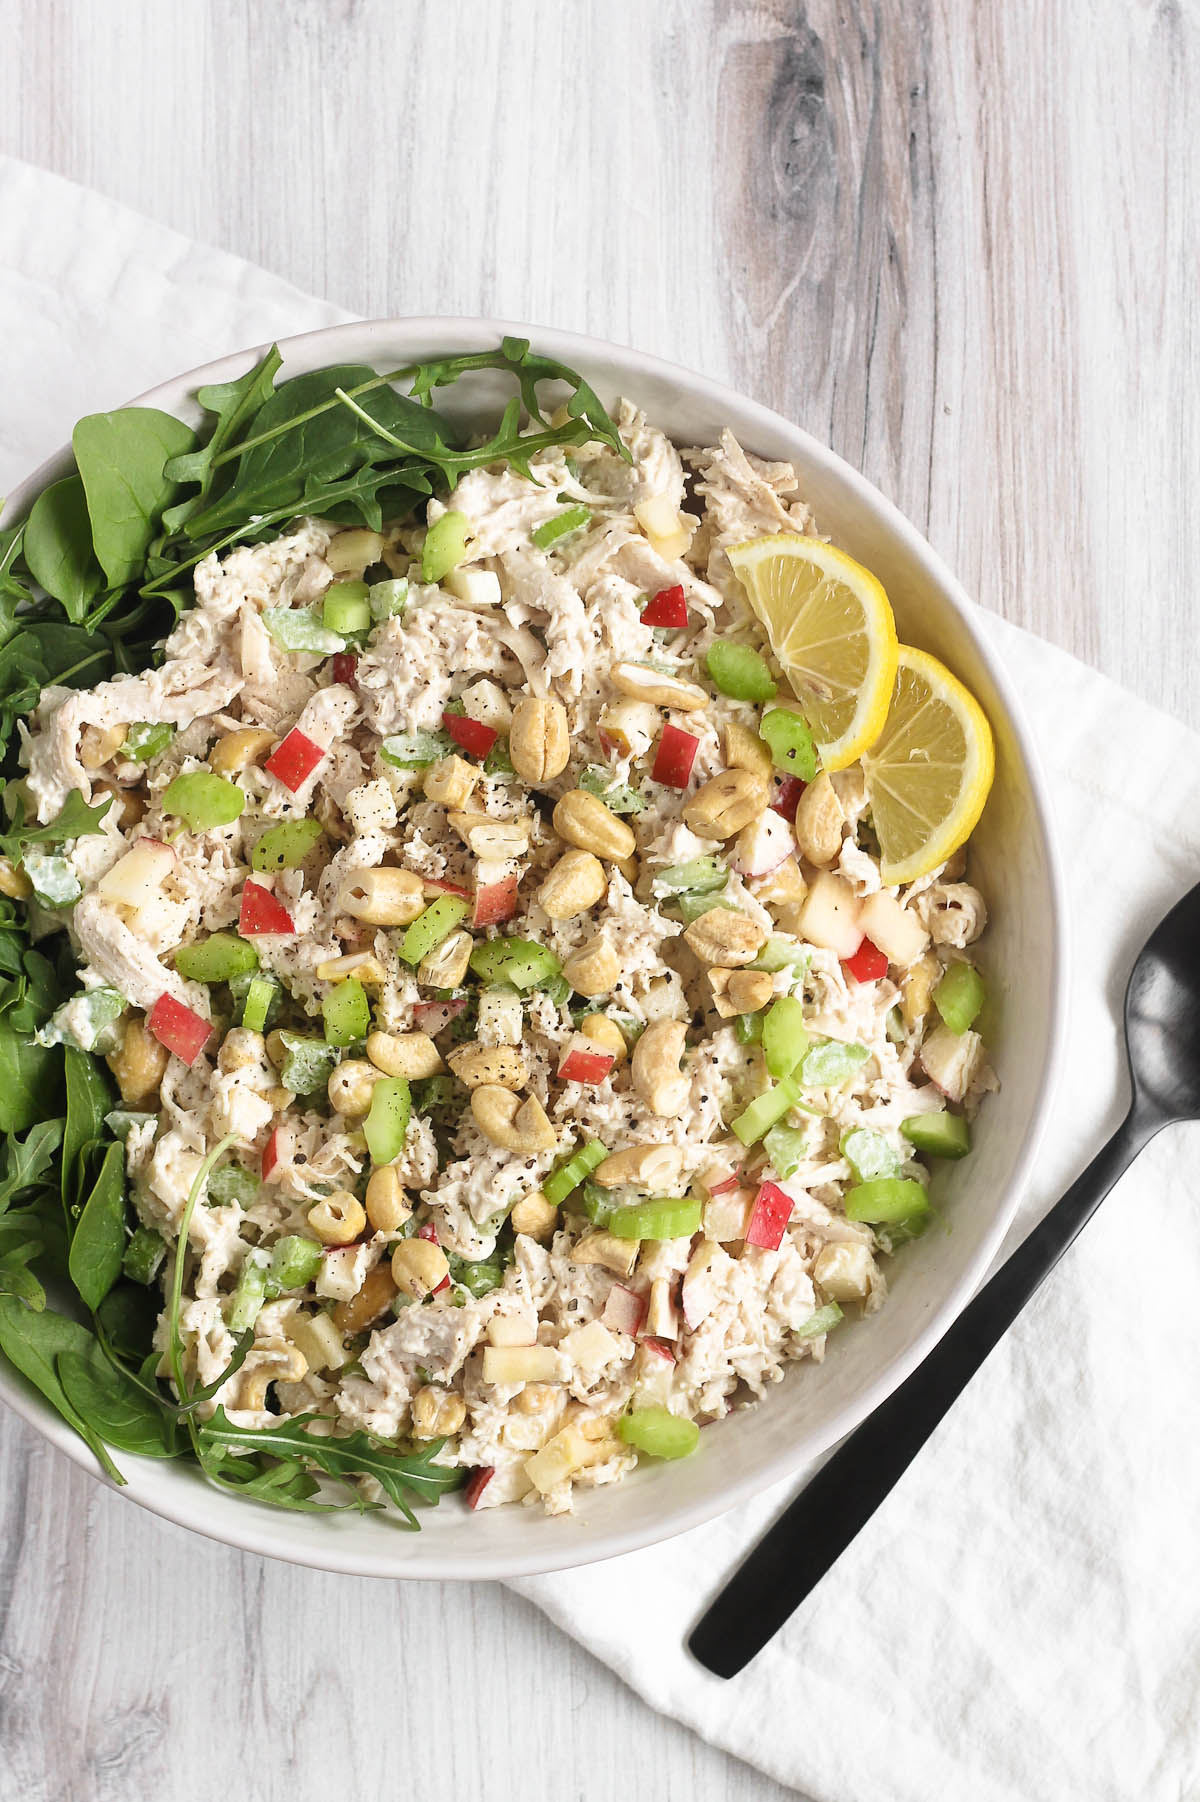 cashew chicken salad in serving bowl